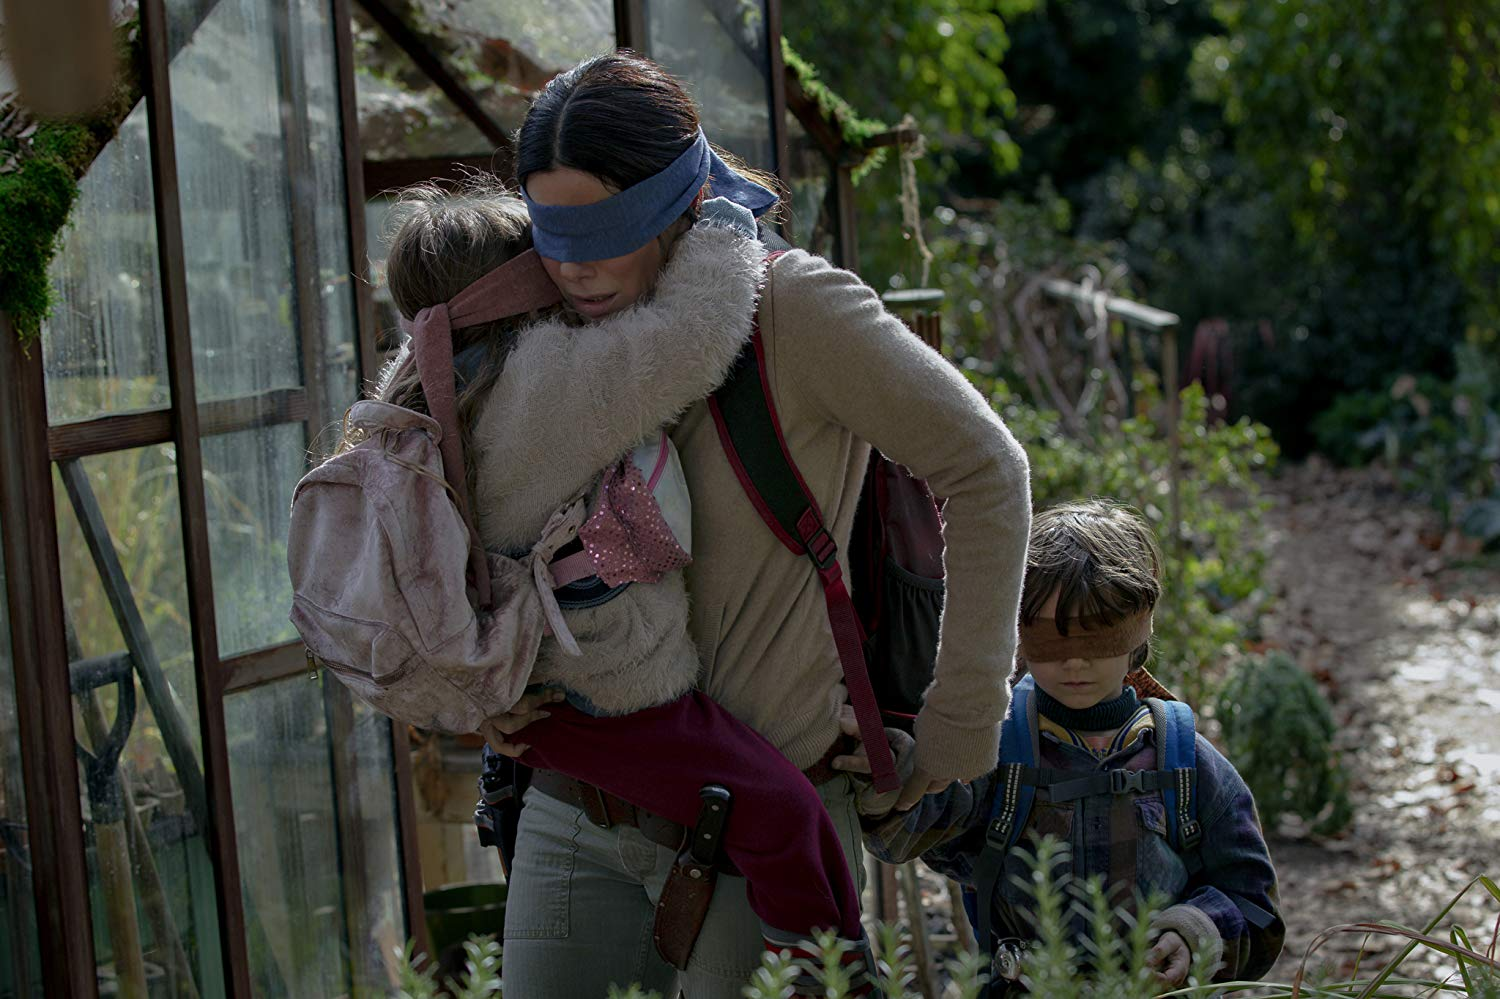 Sandra Bullock tries to guide the two children (Vivien Lyra Blair and Julian Edwards) while blindfolded in Bird Box (2018)